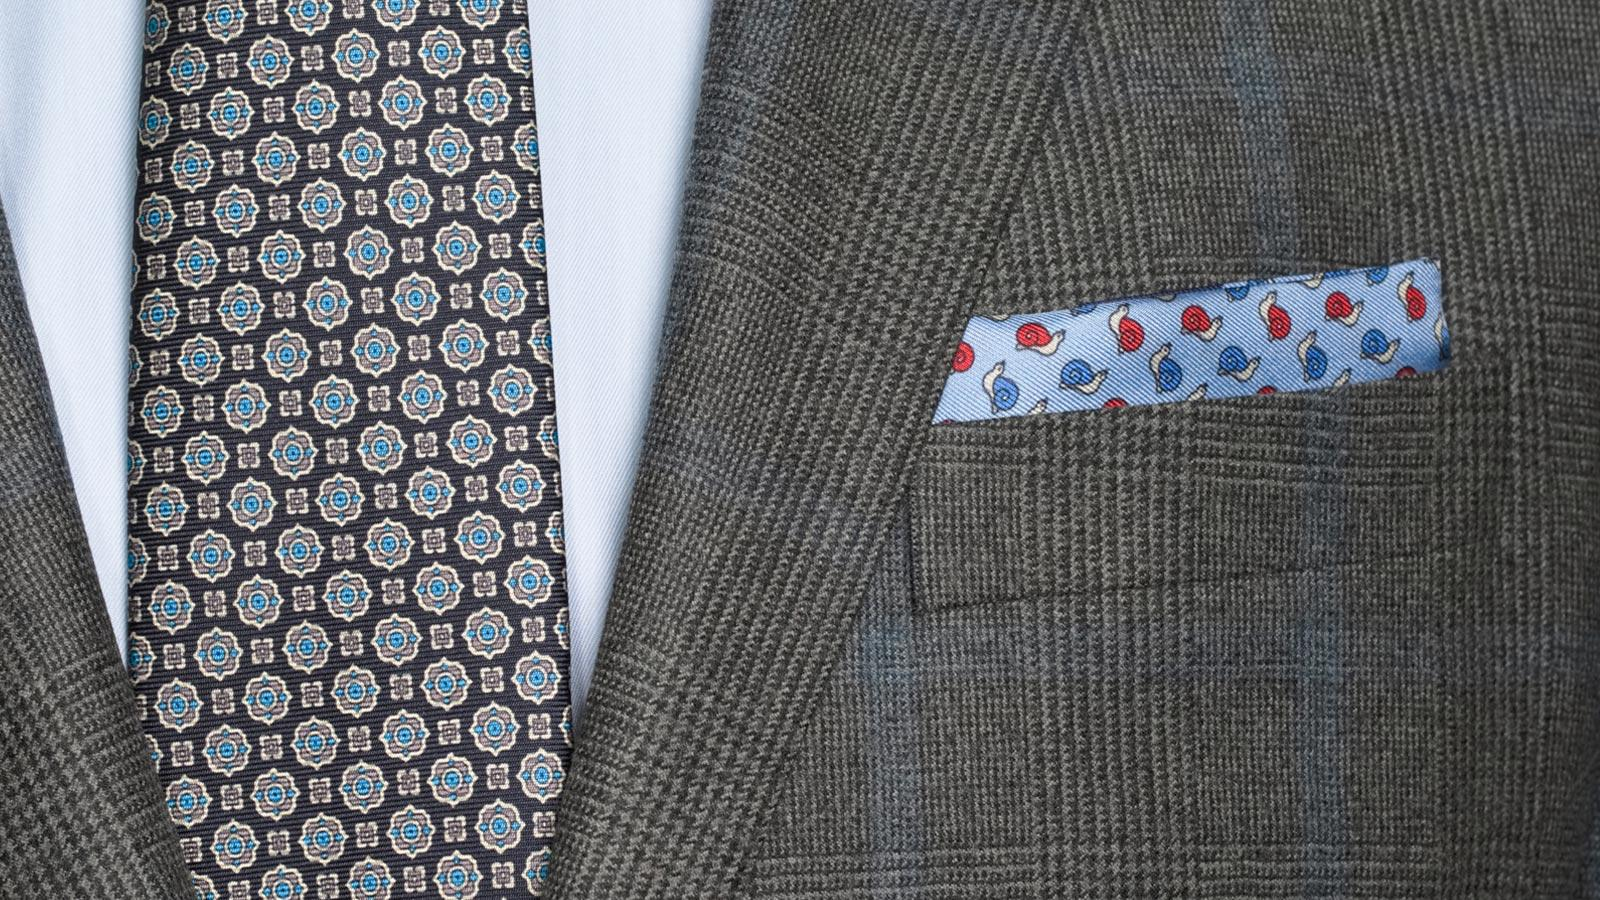 Blue Check Warm Grey Plaid Suit - slider image 1